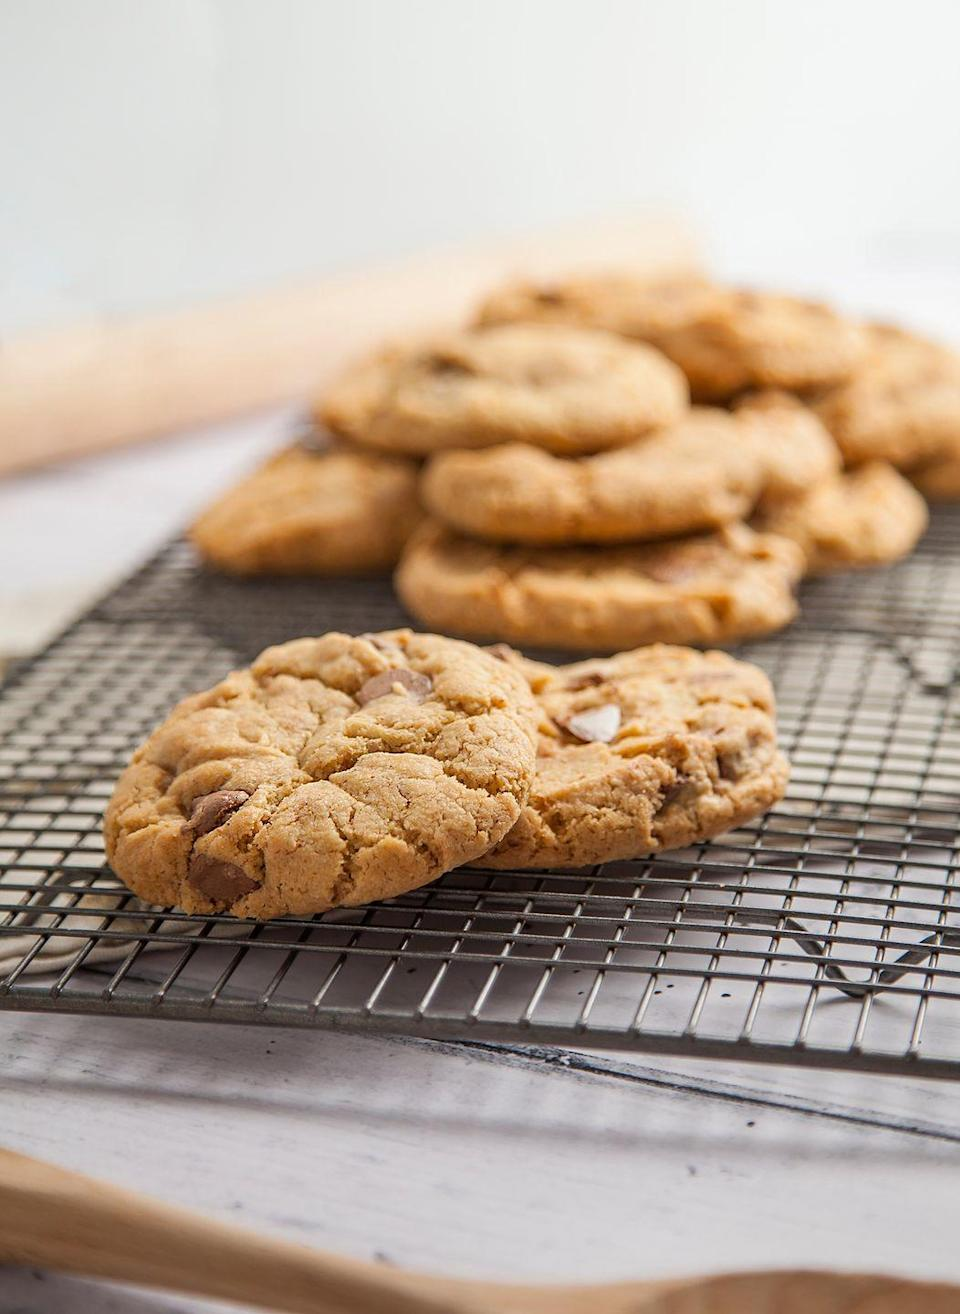 "<p>We can't get enough of these gorgeous vegan chocolate chip cookies. You'll 100% want more than one... <br></p><p><strong>Recipe: <a href=""https://www.goodhousekeeping.com/uk/food/recipes/a25542611/vegan-cookies/"" rel=""nofollow noopener"" target=""_blank"" data-ylk=""slk:Vegan Chocolate Chip Cookies"" class=""link rapid-noclick-resp"">Vegan Chocolate Chip Cookies </a></strong></p>"